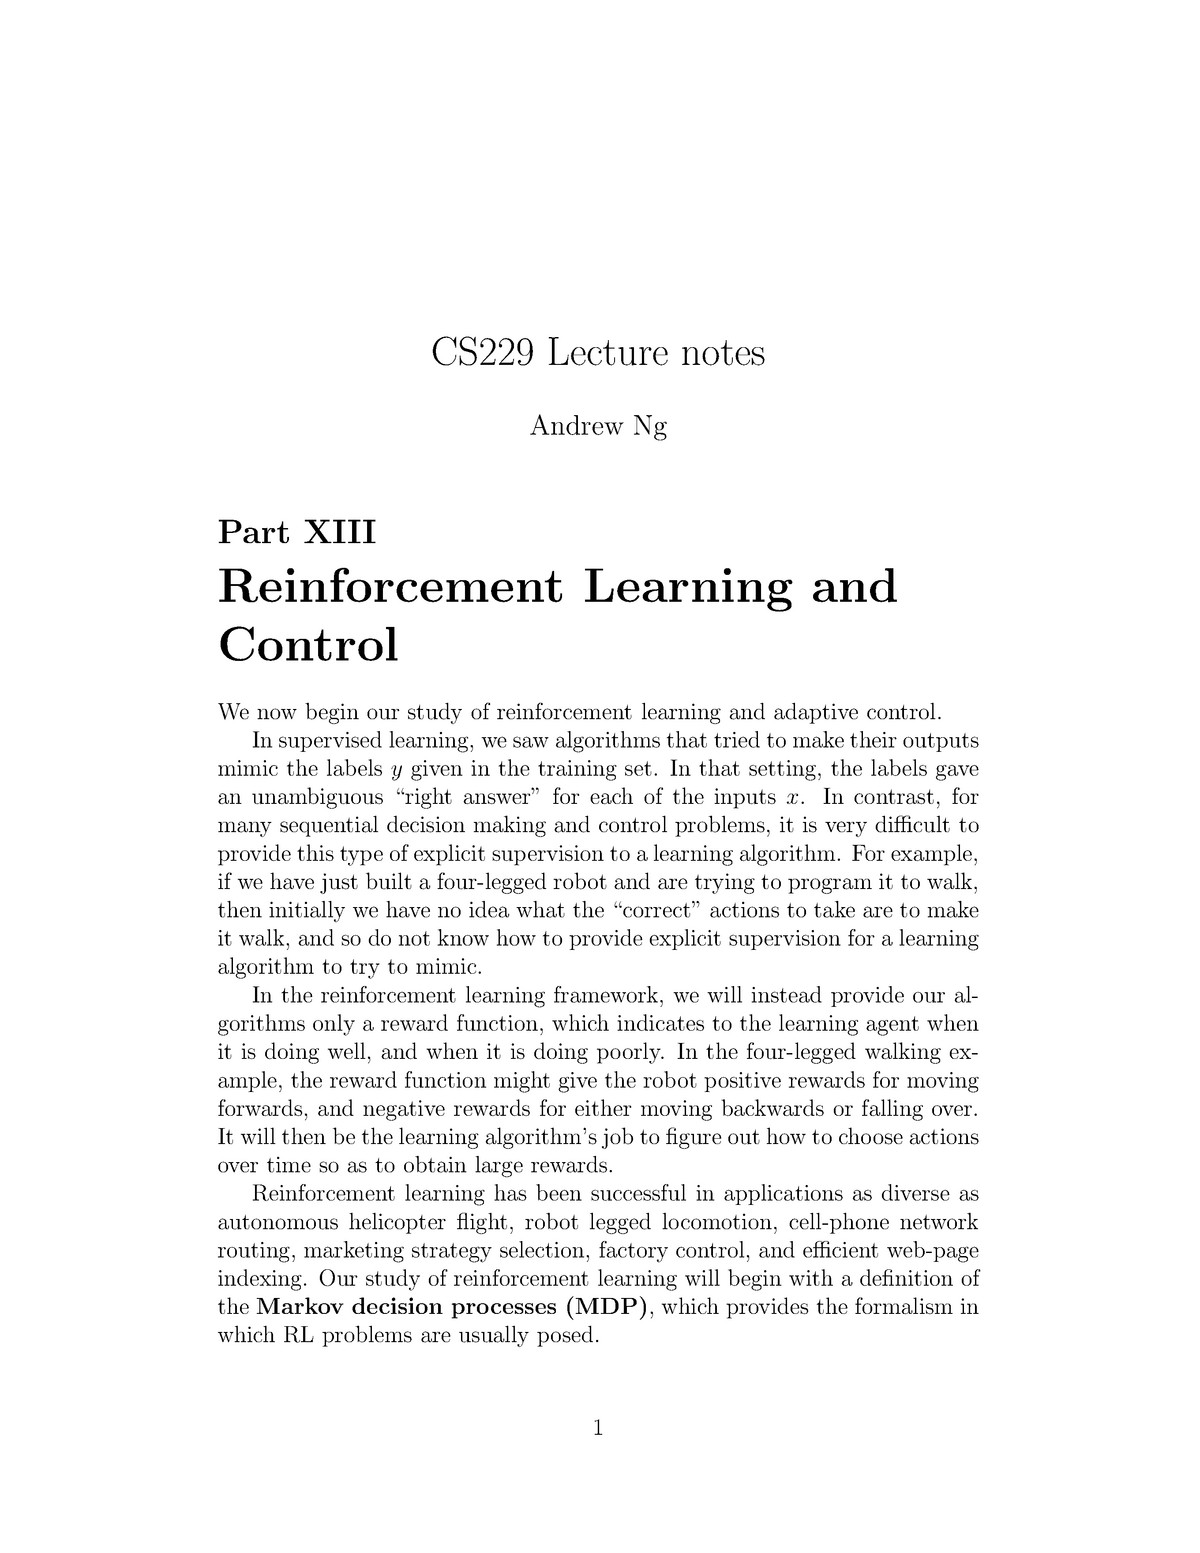 Cs229-notes 12 - Reinforcement Learning and Control notes